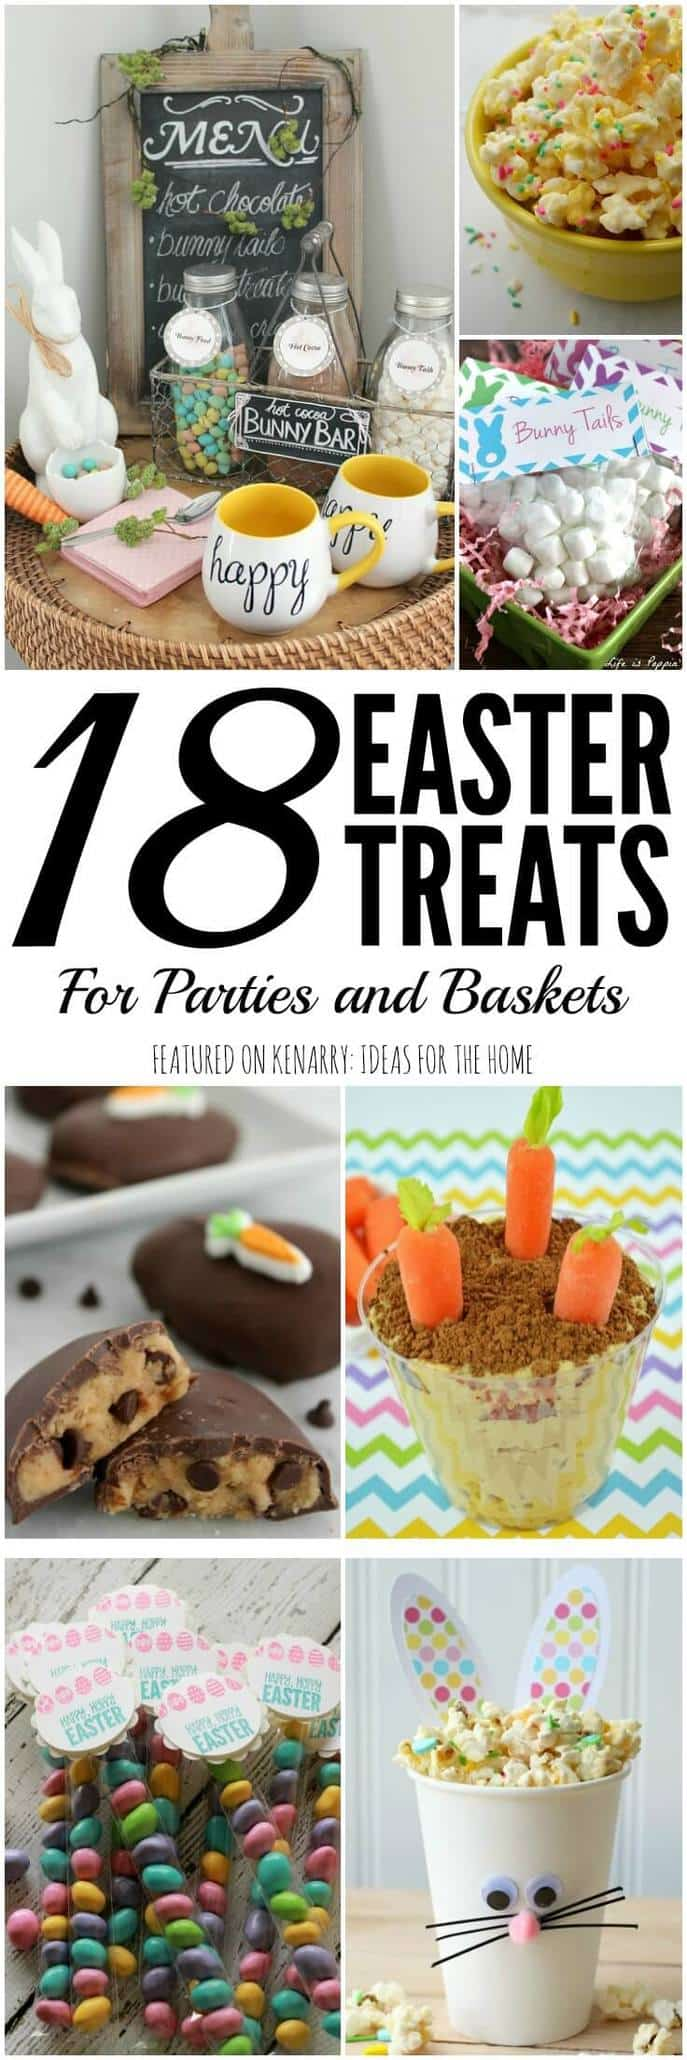 Get inspired for your upcoming Easter festivities! Check out these 18 fun ideas for Easter Treats that would be perfect for a party or kids' Easter baskets.